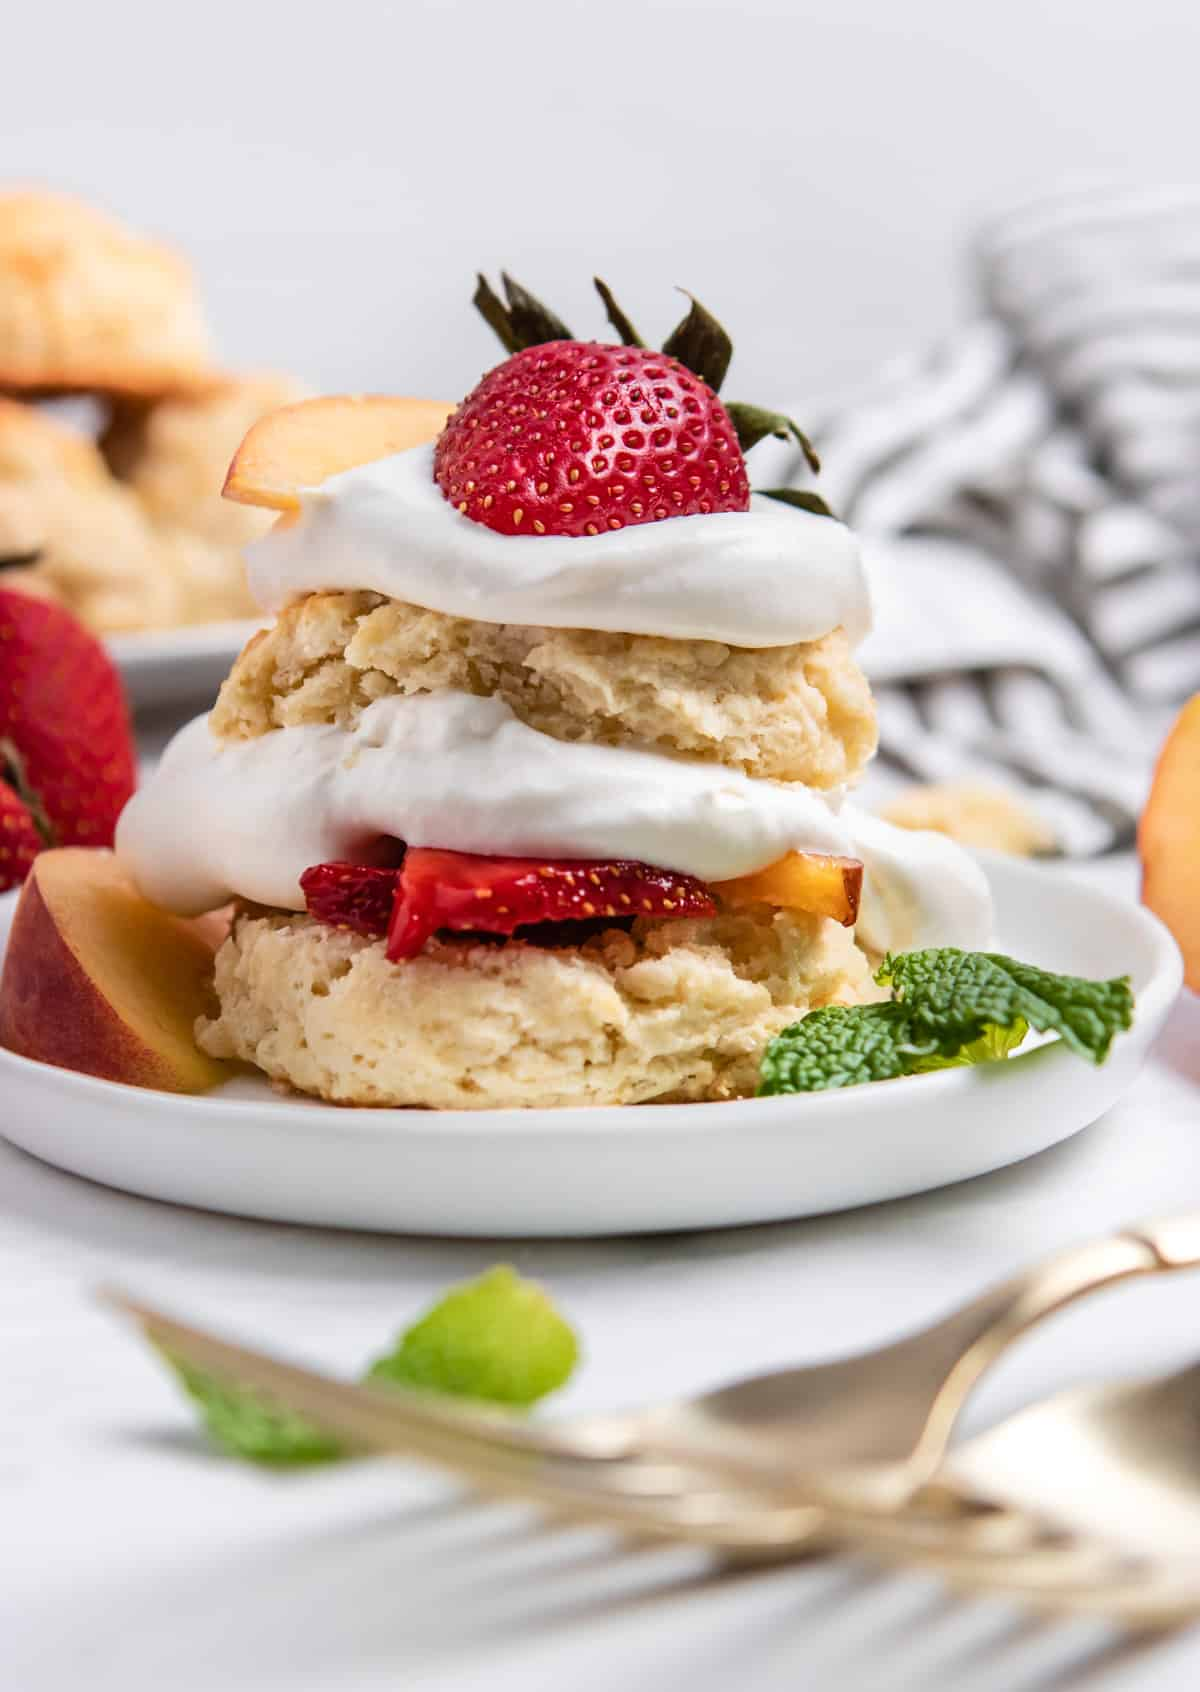 Strawberry peach shortcake on white plate with fresh mint and forks.